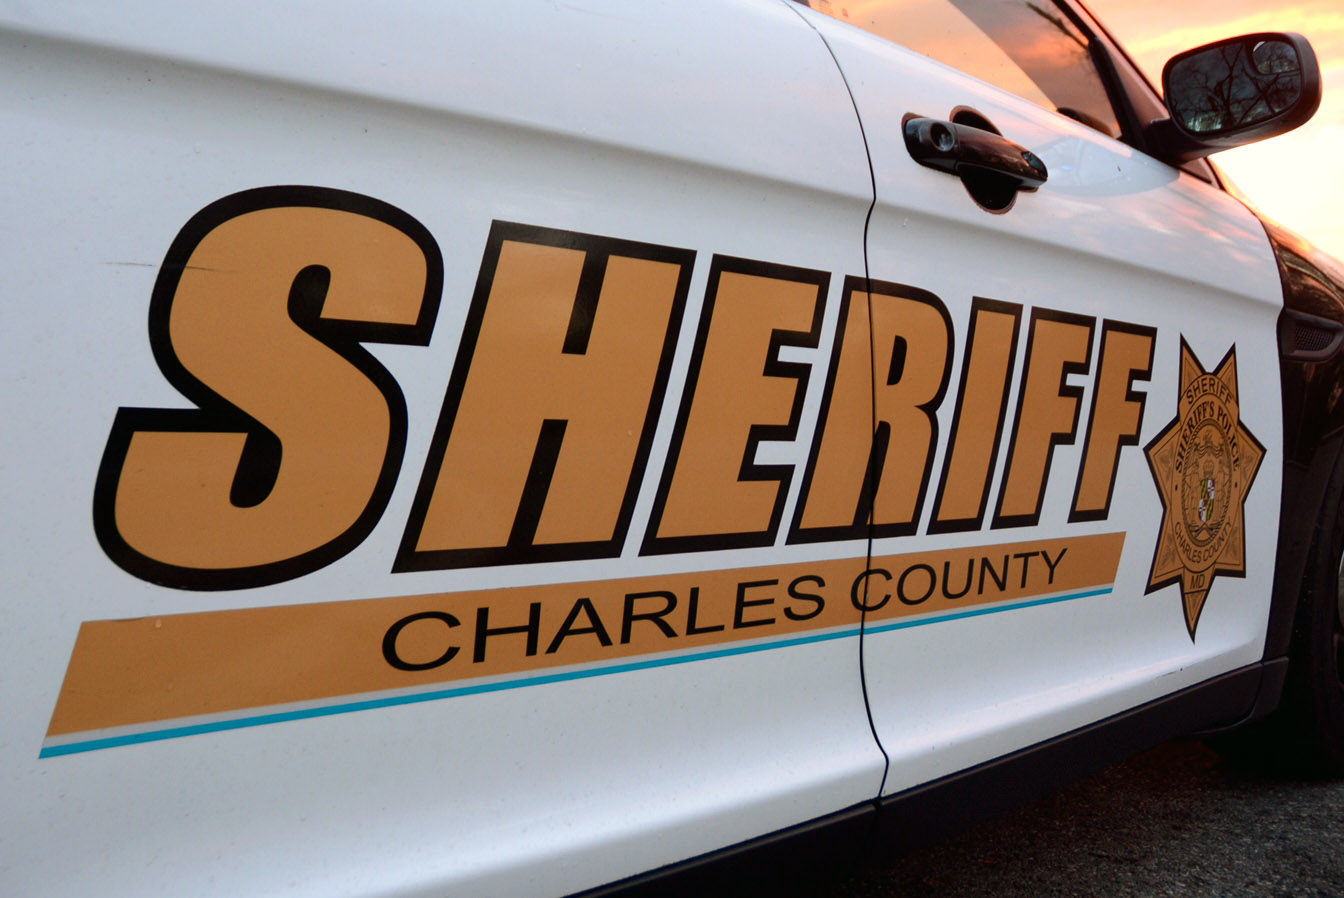 Teen killed, 2 others injured in Charles Co  crash   WTOP